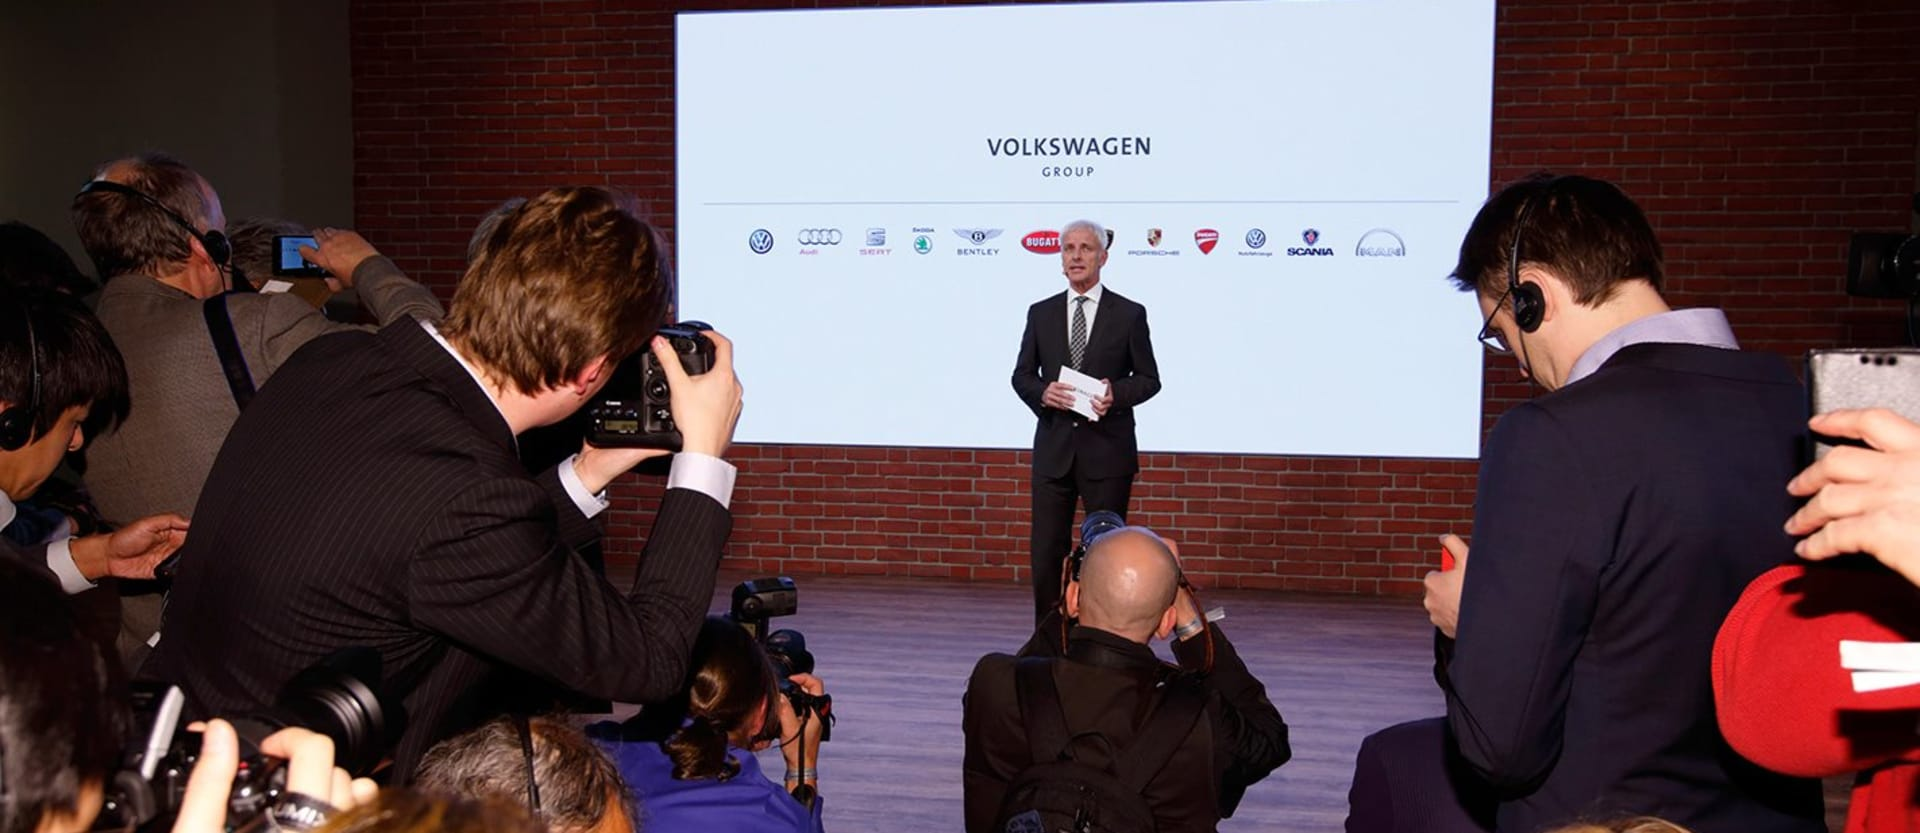 2016 a year to lay foundations to 'better Volkswagen'